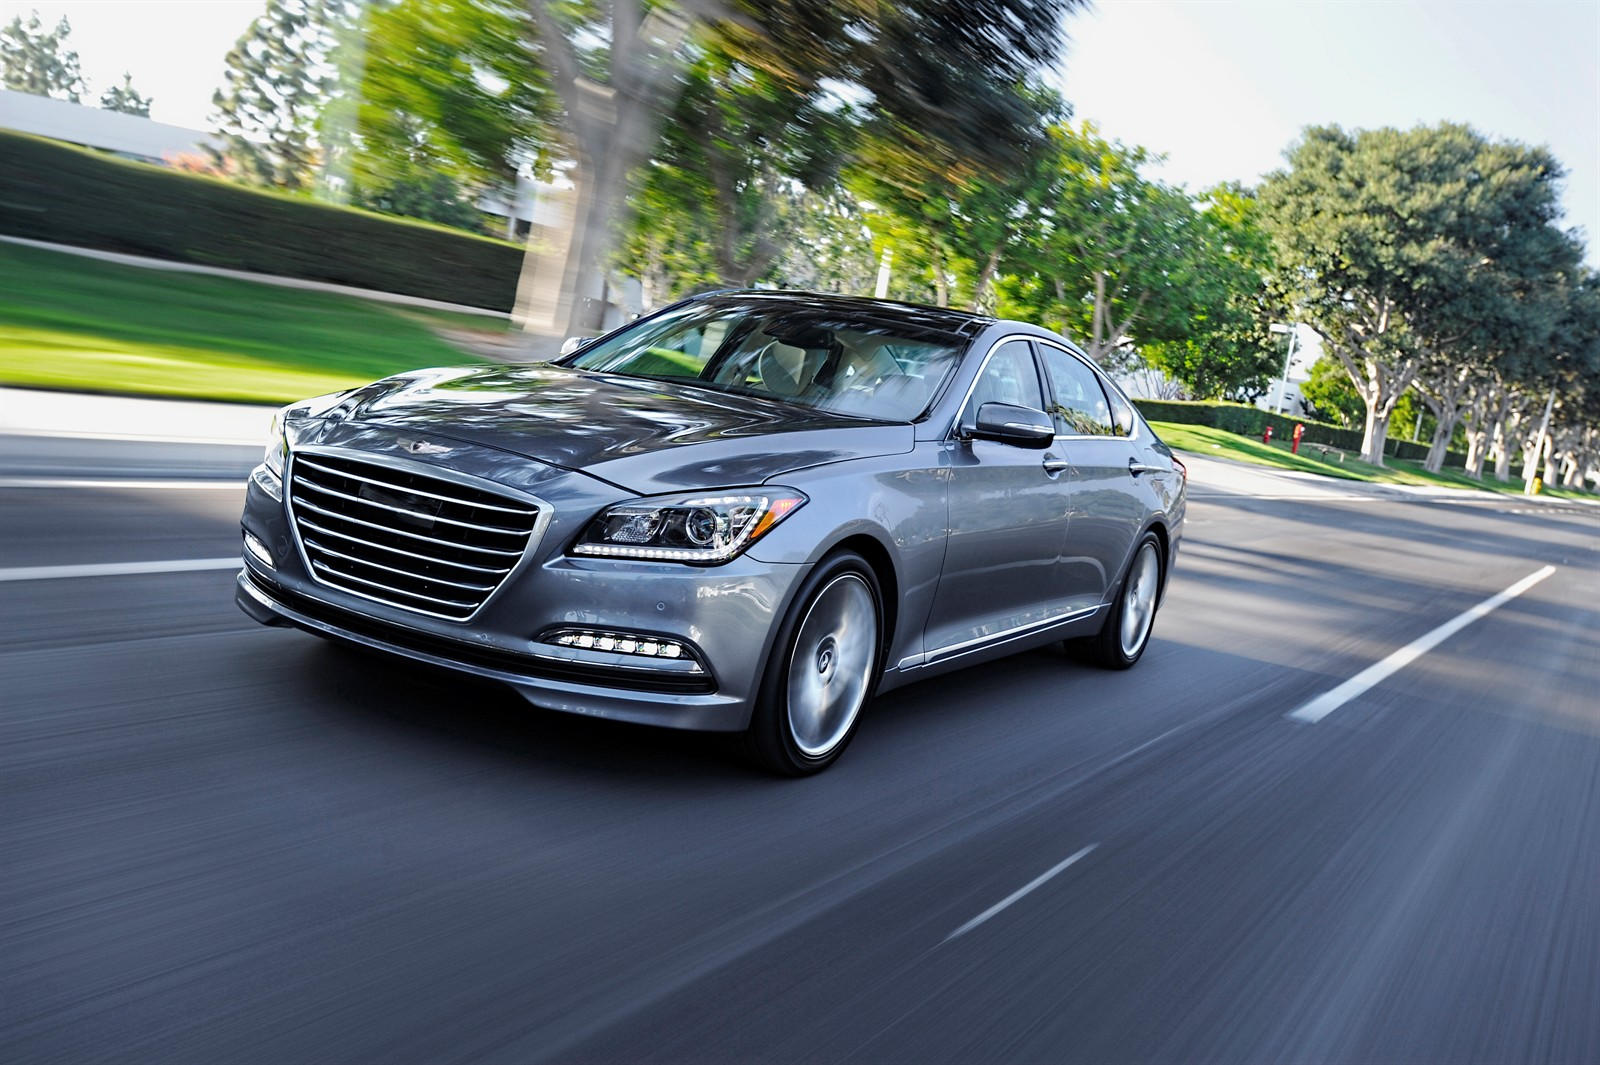 2015 hyundai genesis sedan starting price set at 38 000